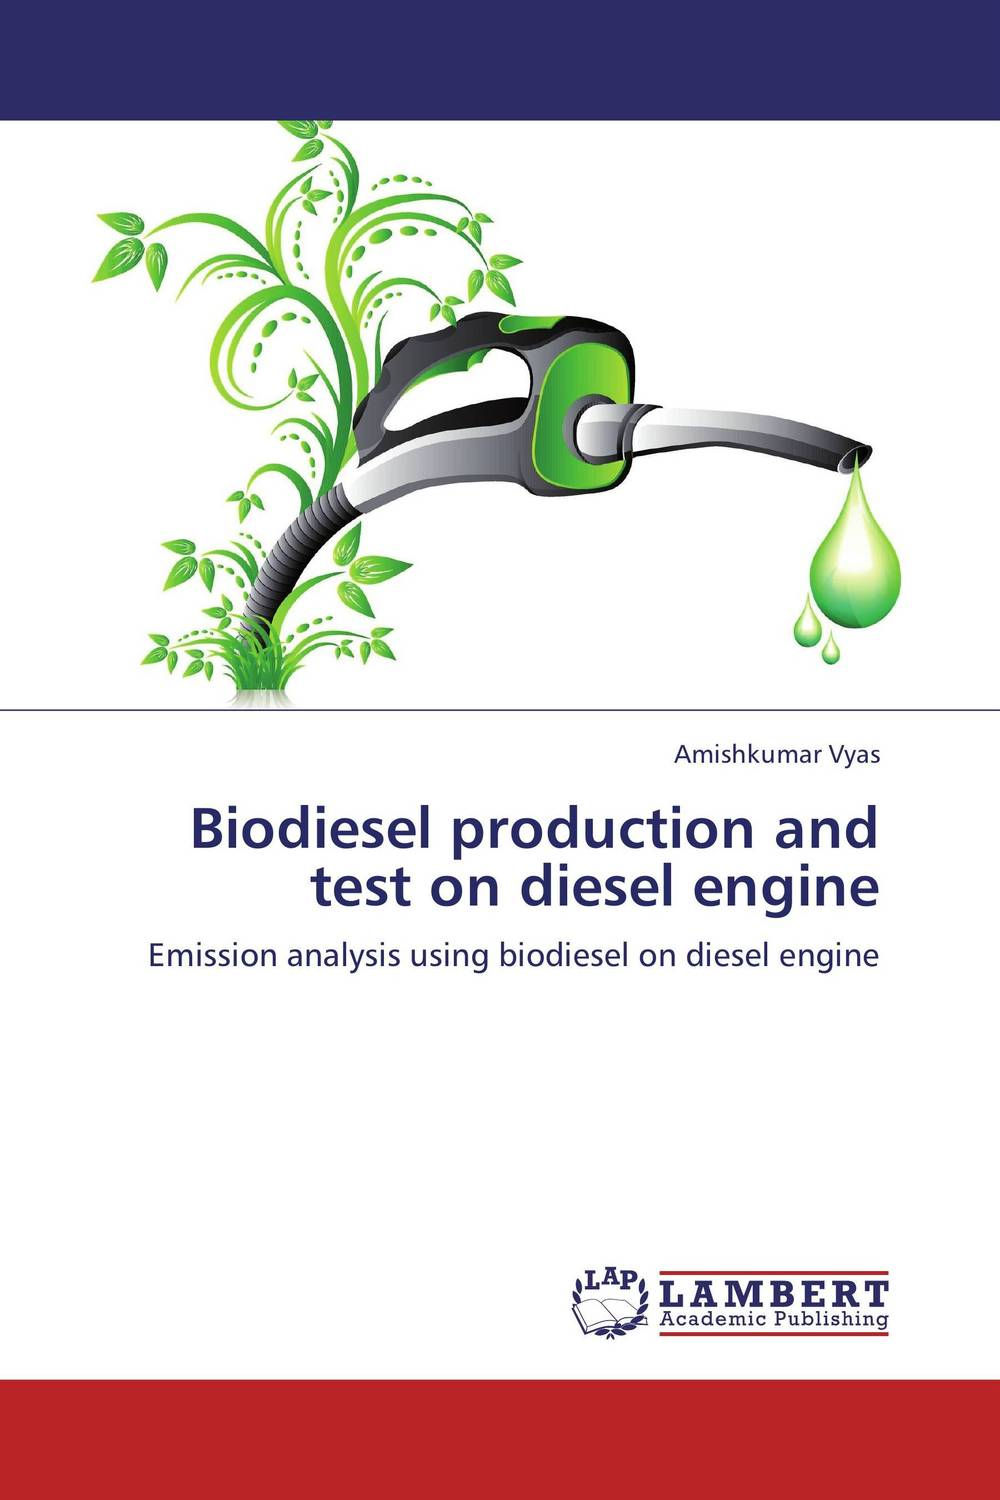 Biodiesel production and test on diesel engine dearomatization of crude oil